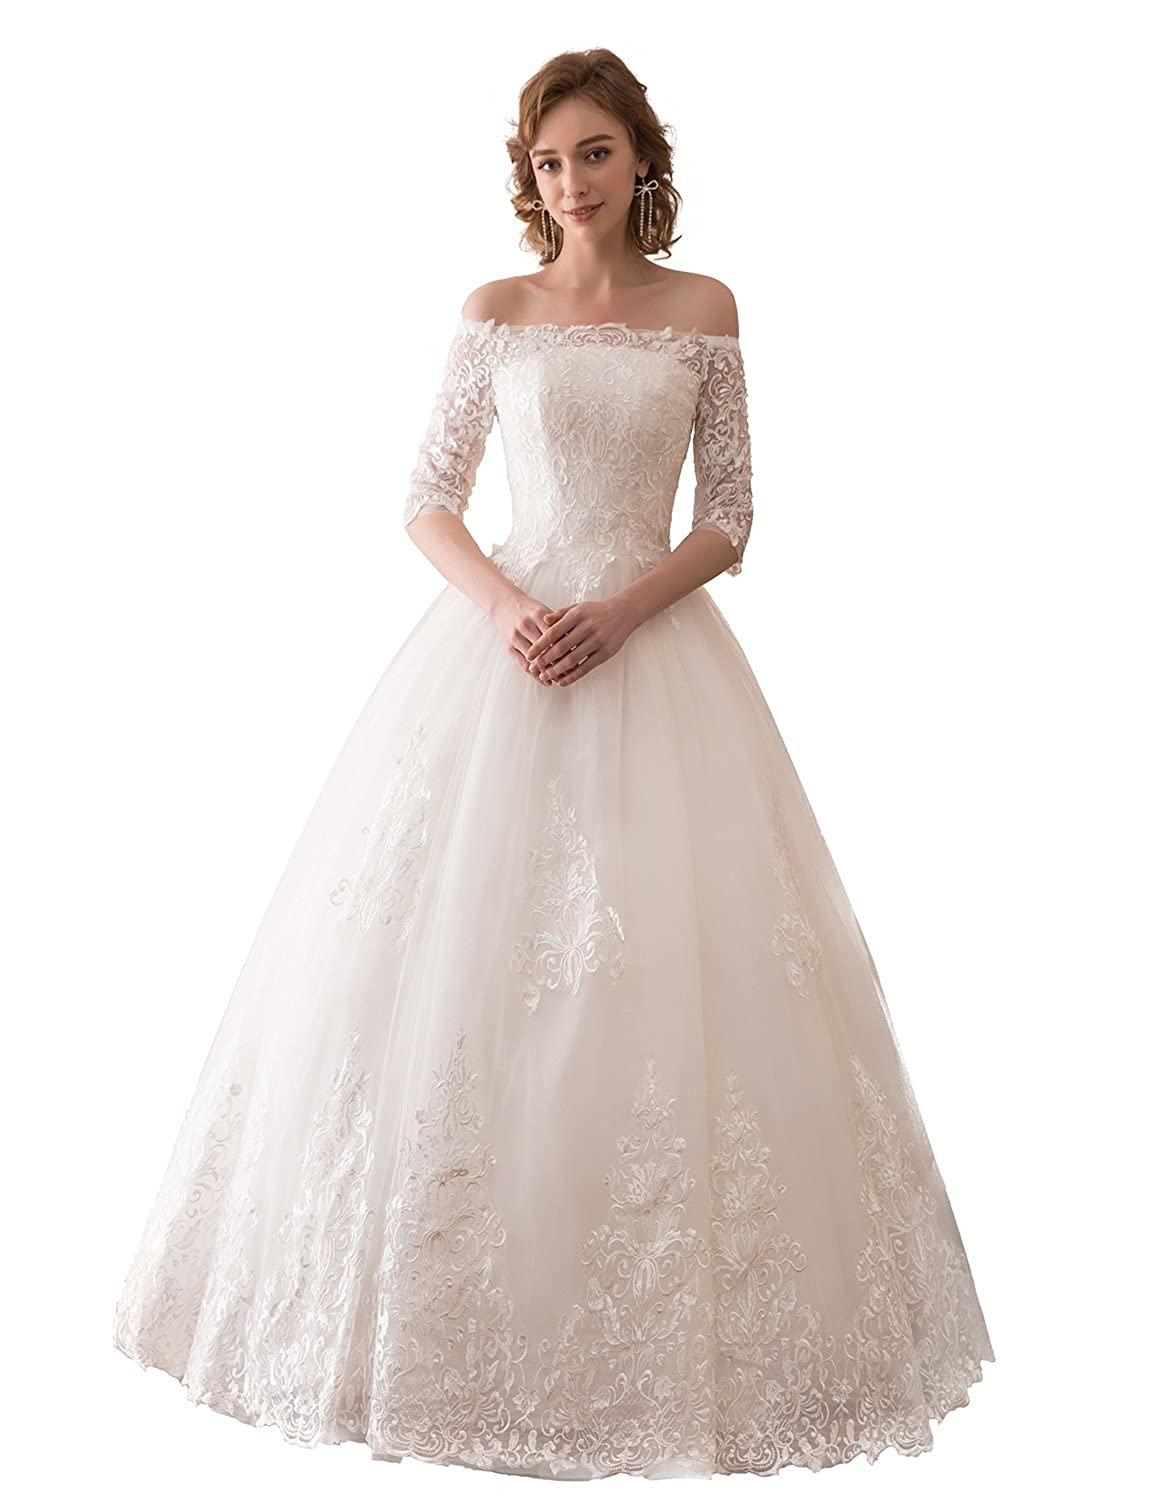 a3eb36dceb69 YIRENWANSHA White Lace Long Sleeves Off Shoulder Strapless A Line Wedding  Dresses Floor Length Evening Formal Gown WD121 at Amazon Women s Clothing  store